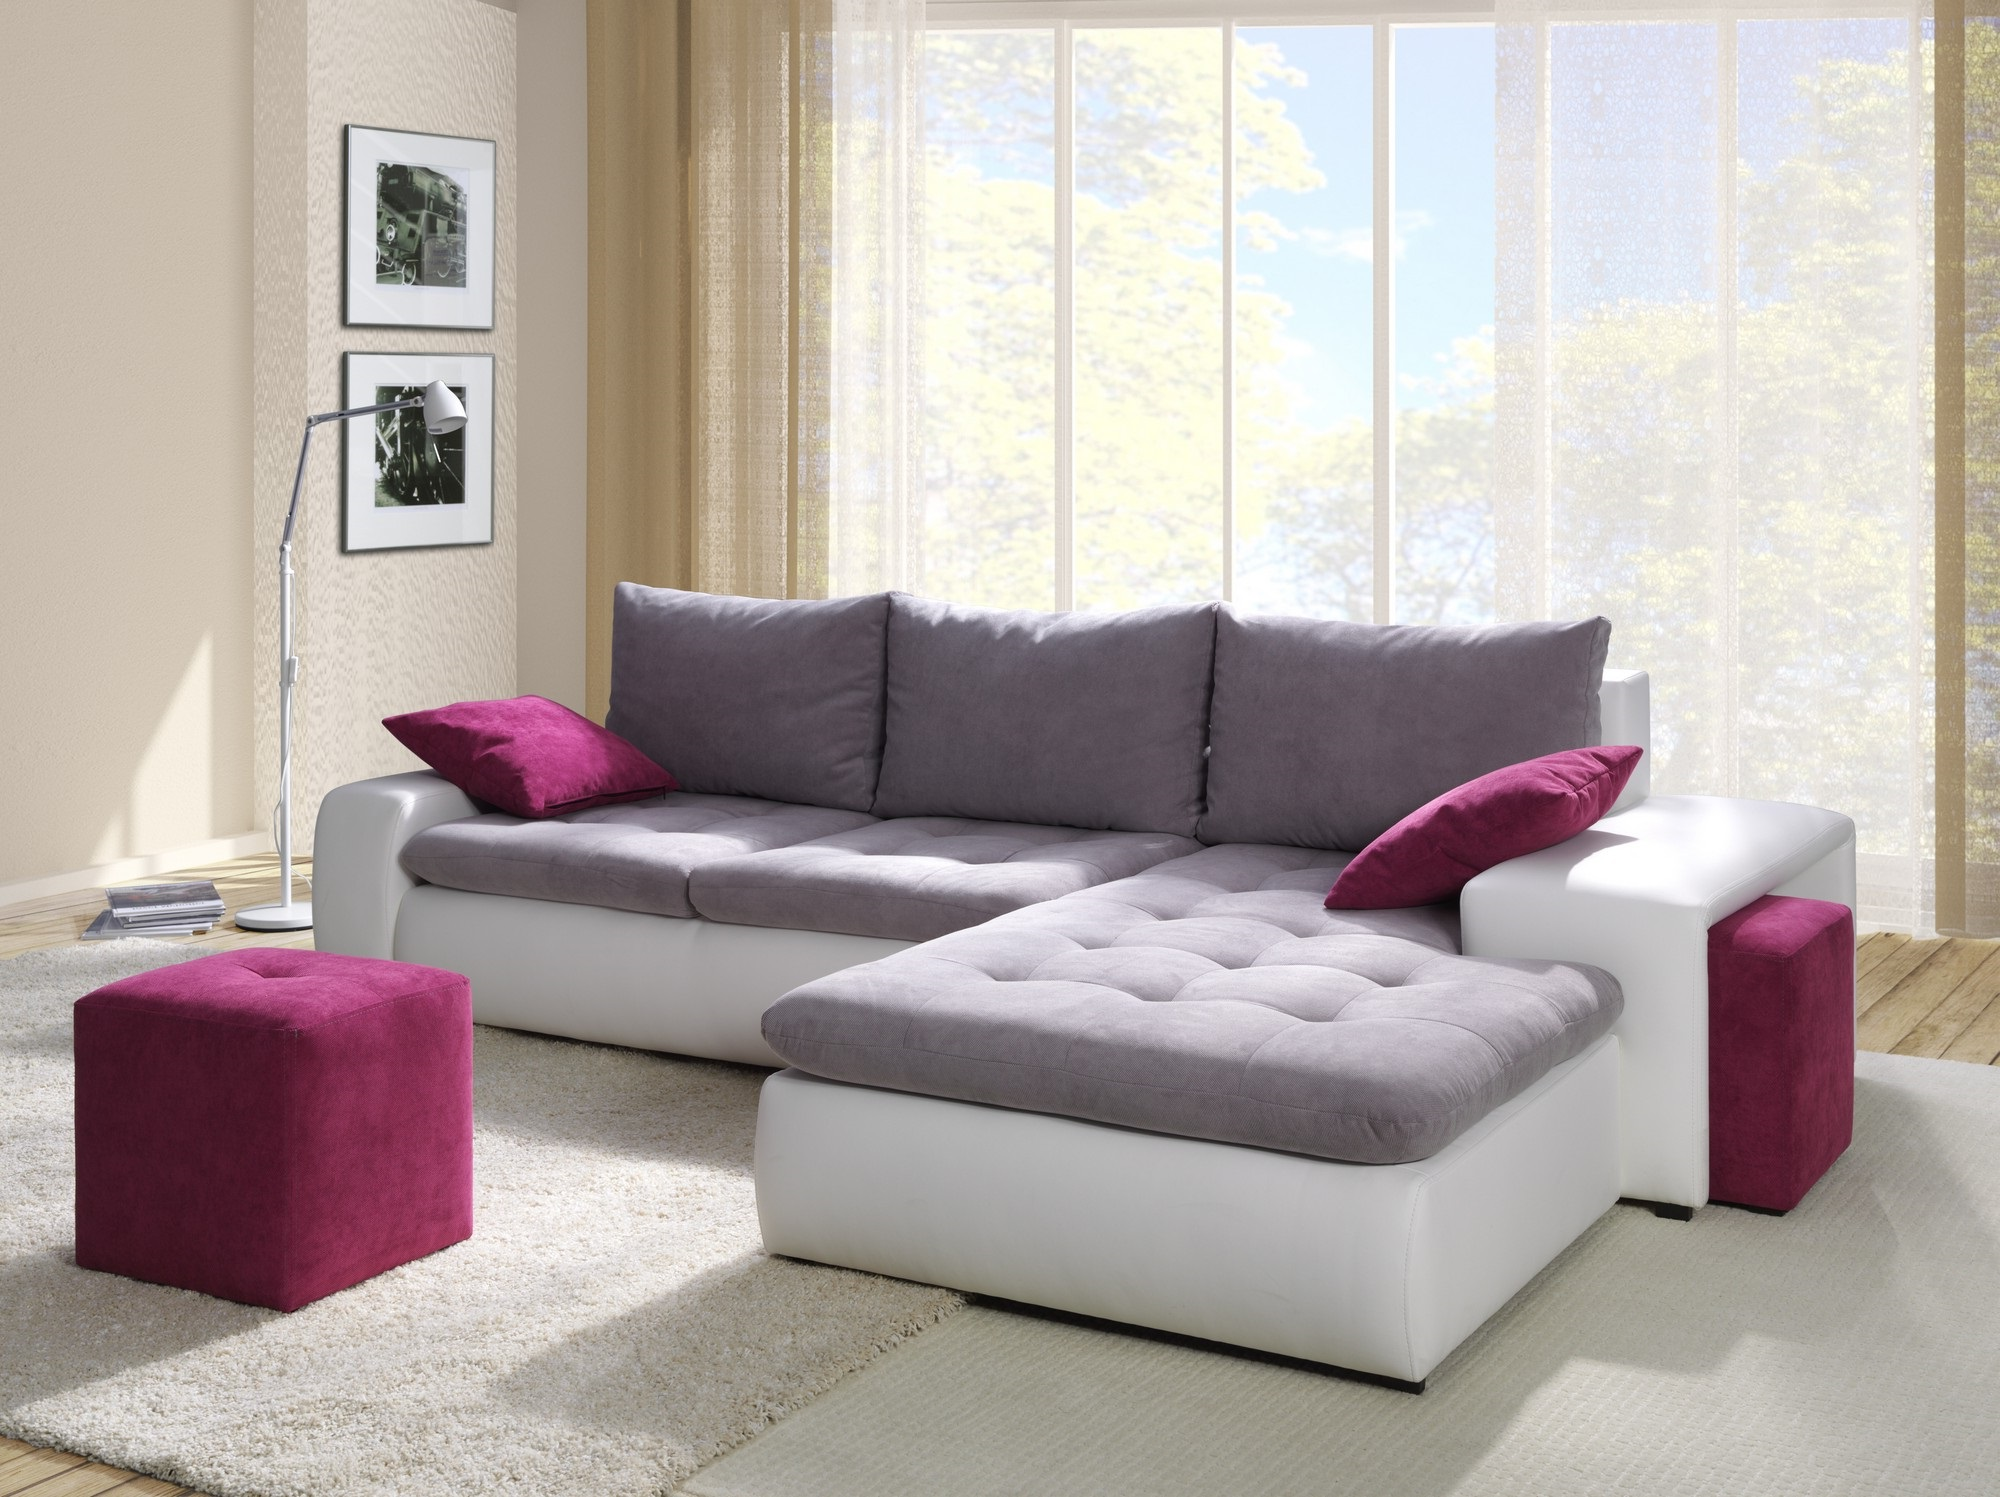 sofa san mateo king juicy burger chattanooga hours sectional sleeper creative furniture